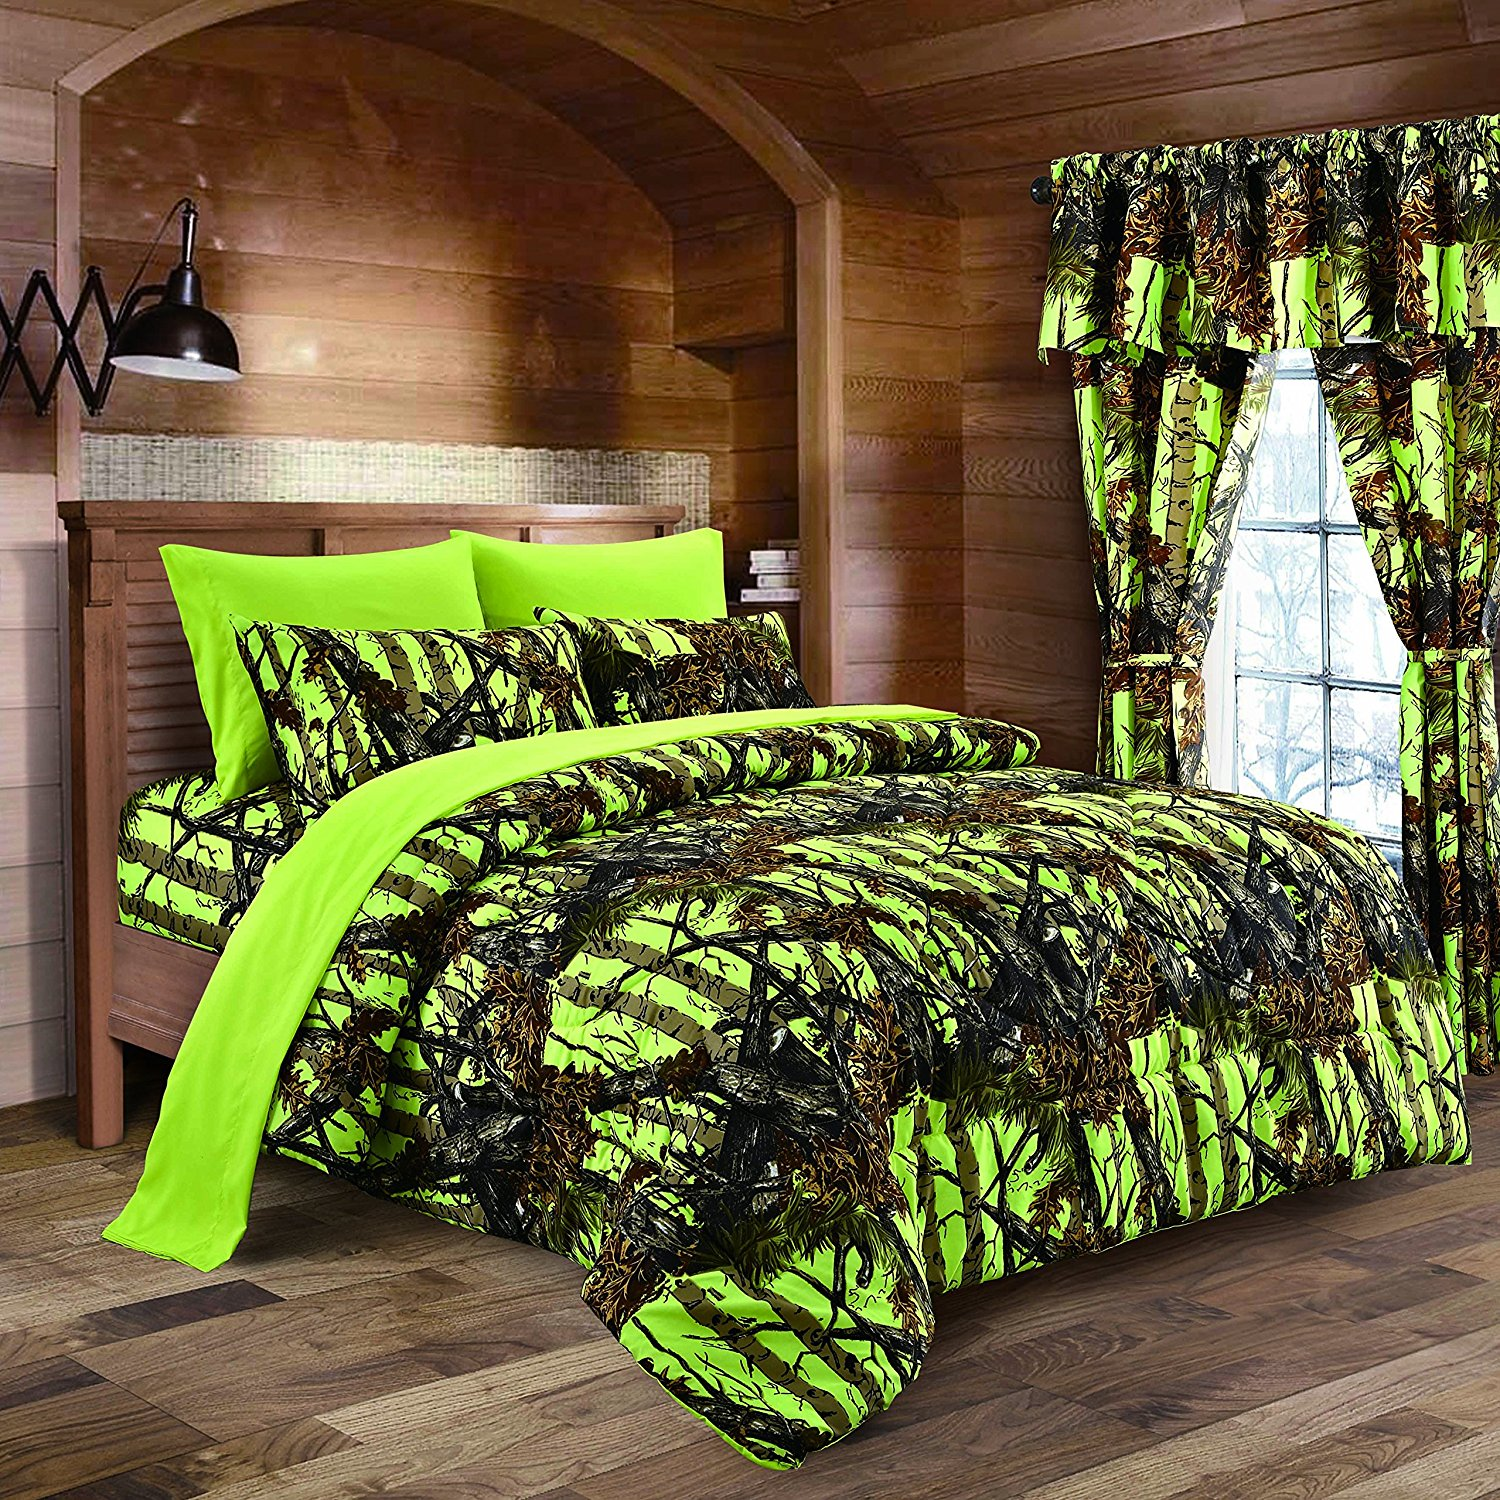 Lime Camouflage Queen Size 8pc Comforter Sheet Pillowcases And Bed Skirt Set Camo Bedding For Hunters S Boys